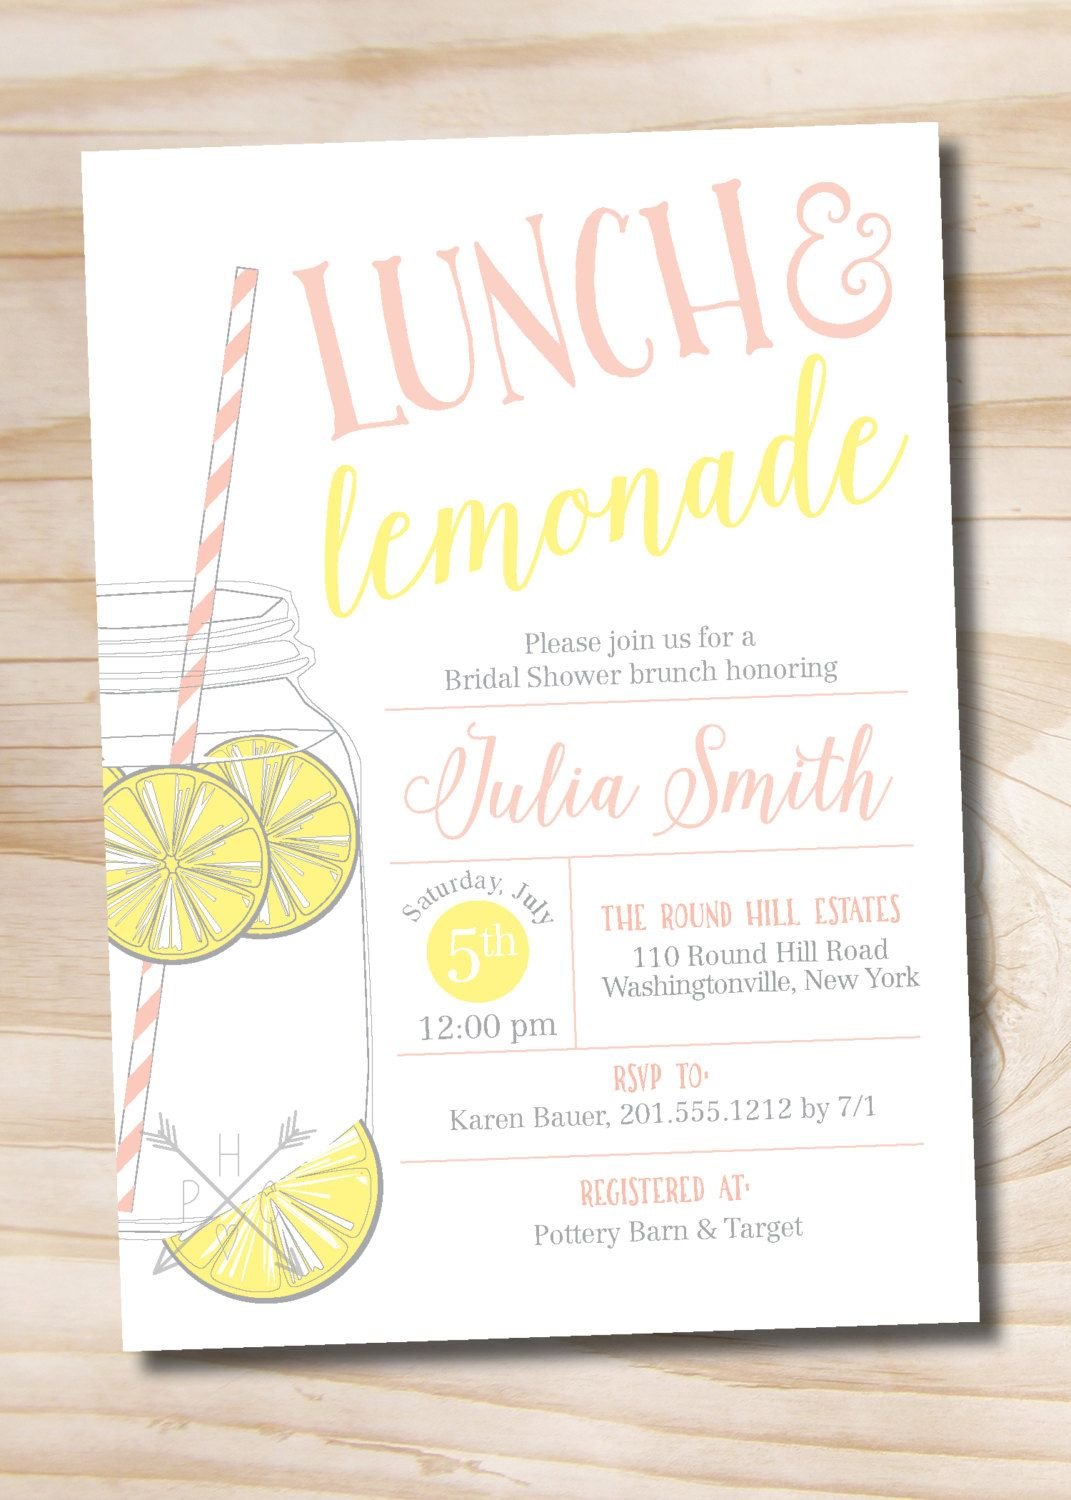 lunch and lemonade mason jar bridal shower invitation casual bridal shower invitation digital or printed invitation by paperheartcompany on etsy